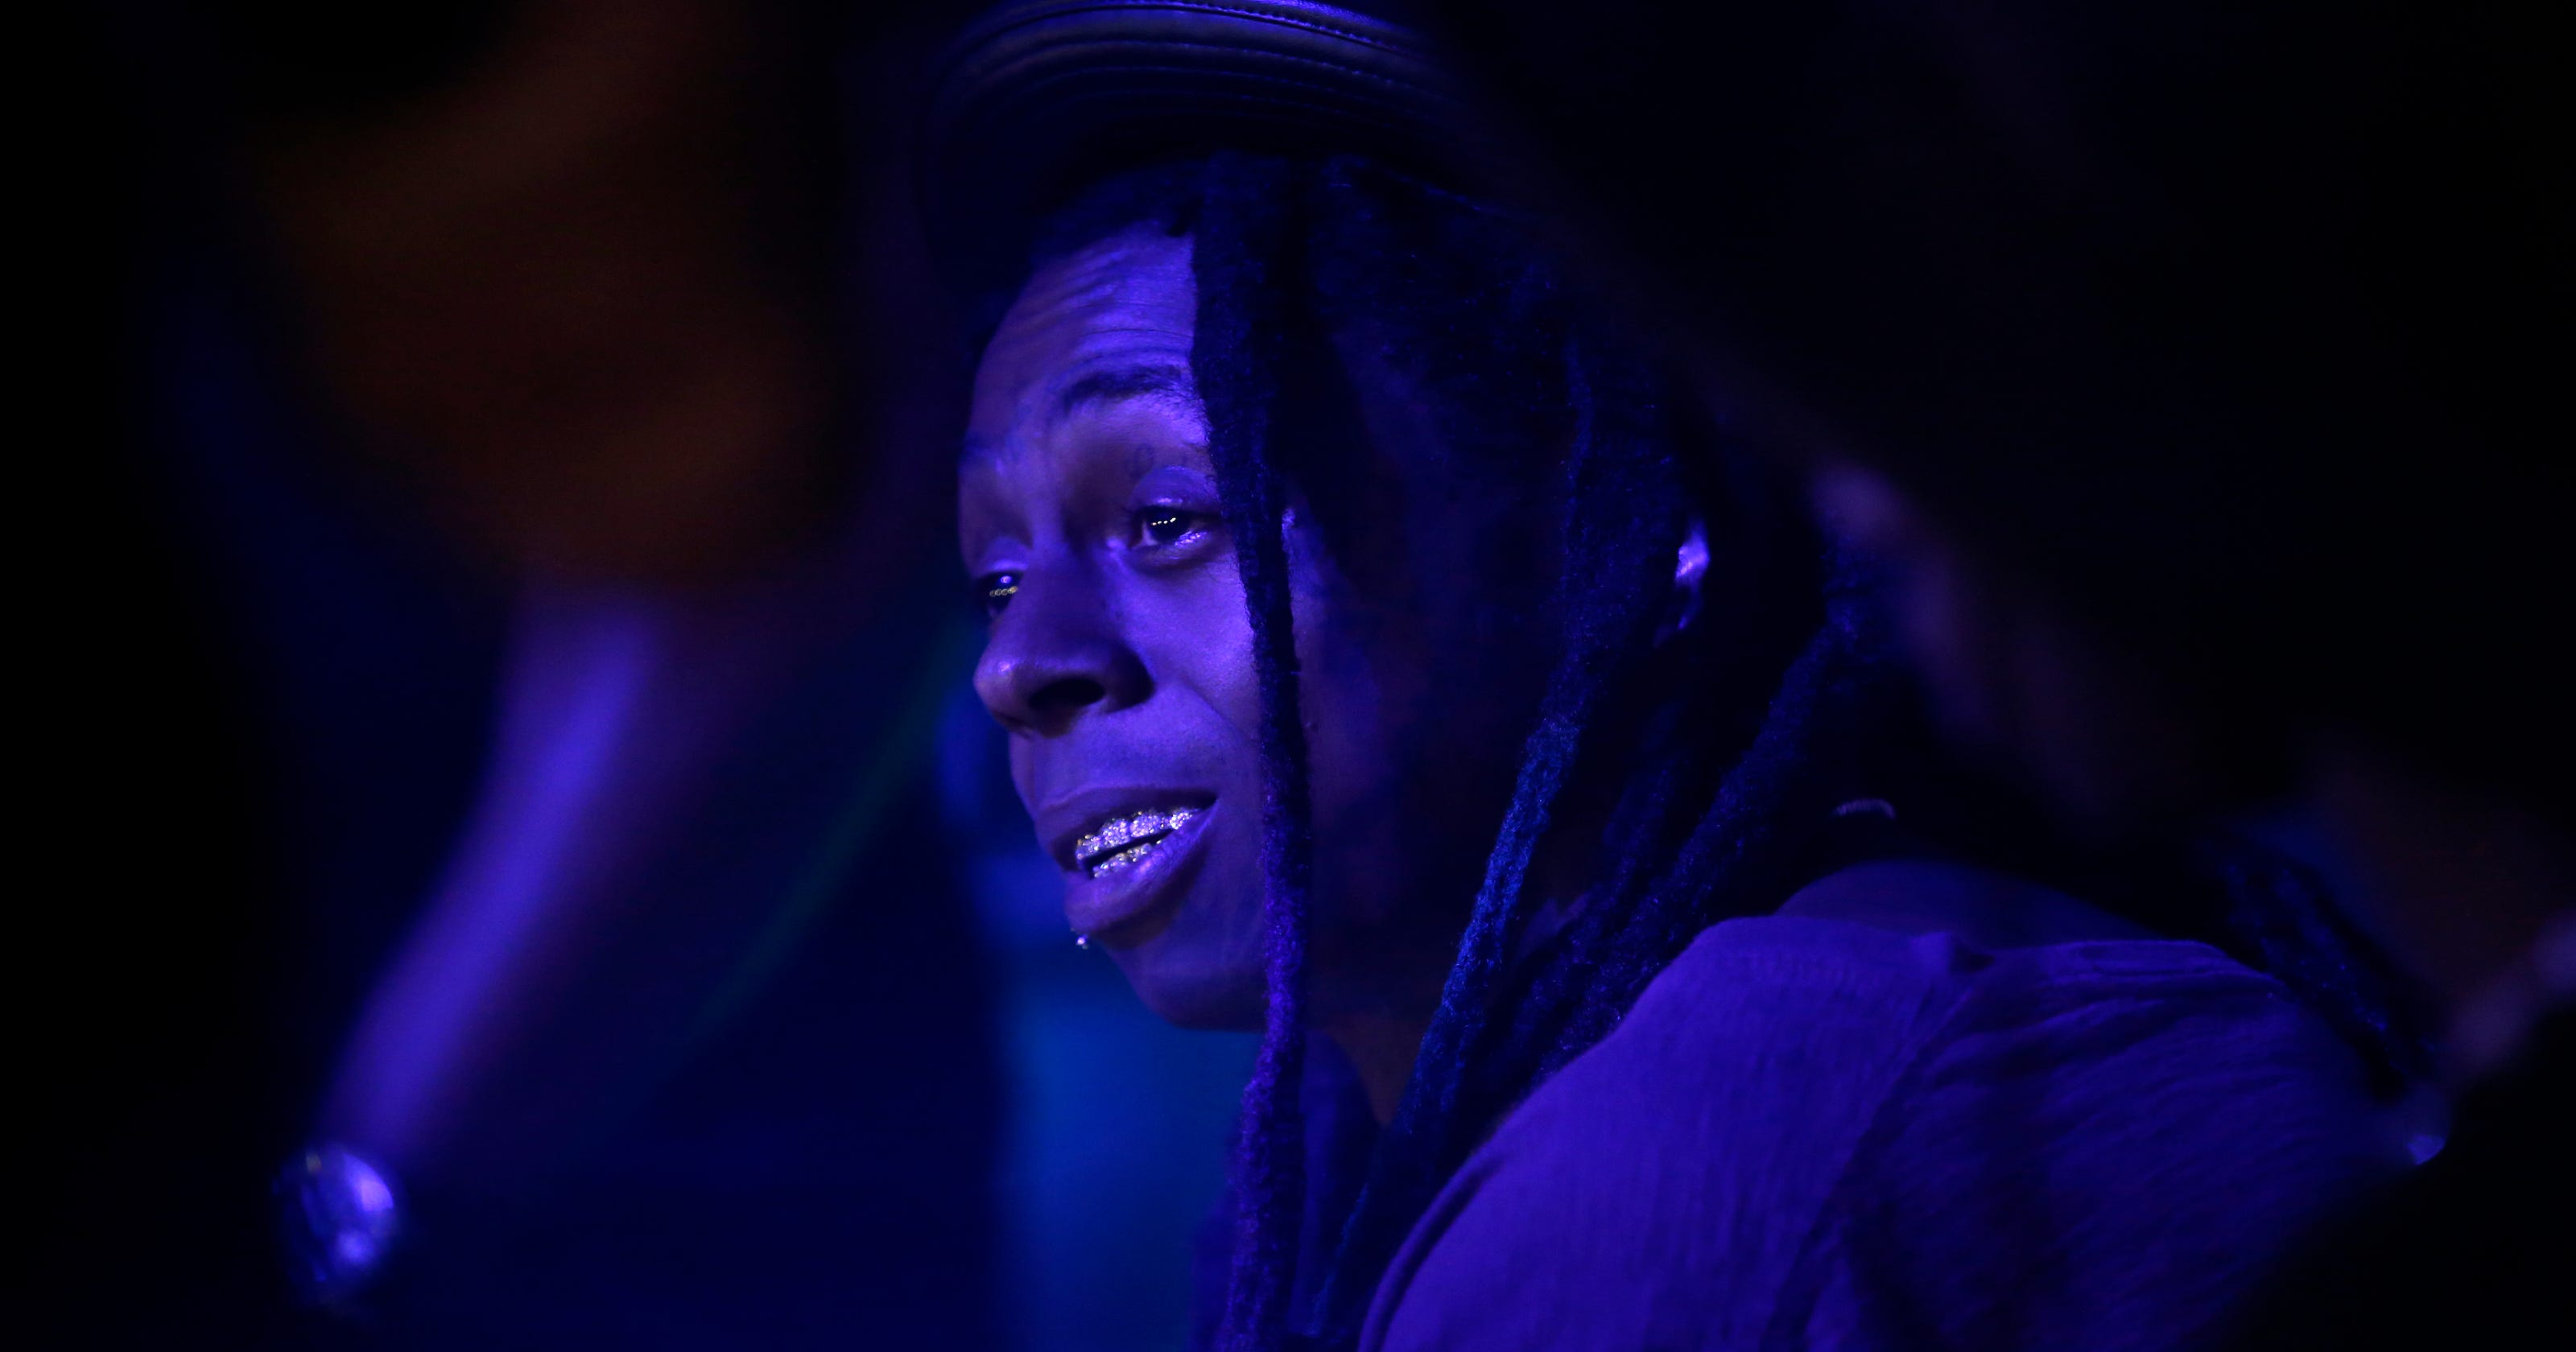 Rappers Lil Wayne, Rich Homie Quan to light up Tallahassee